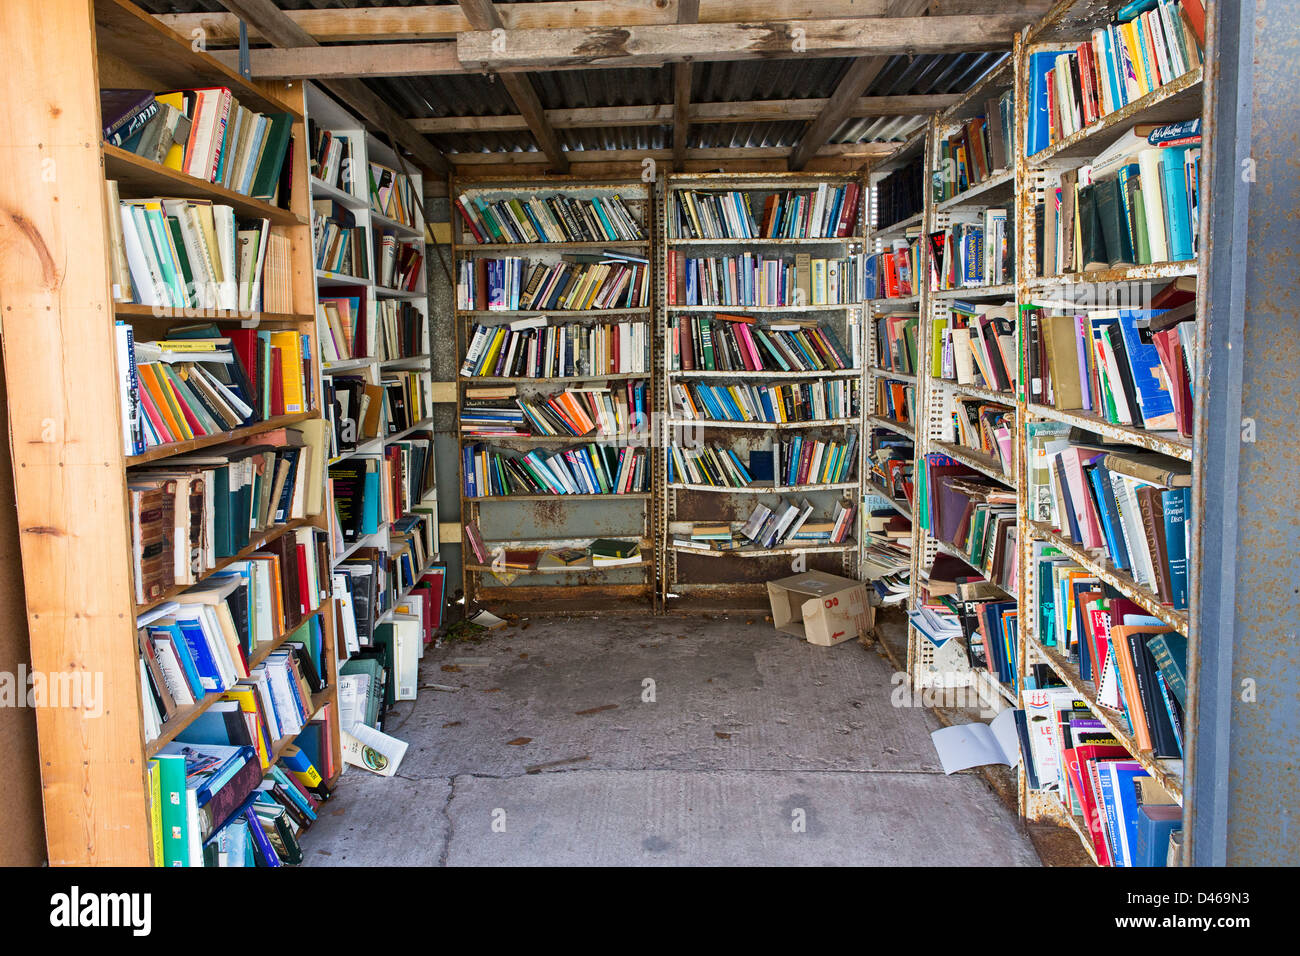 Books in honesty book shop in hay-on-wye - Stock Image